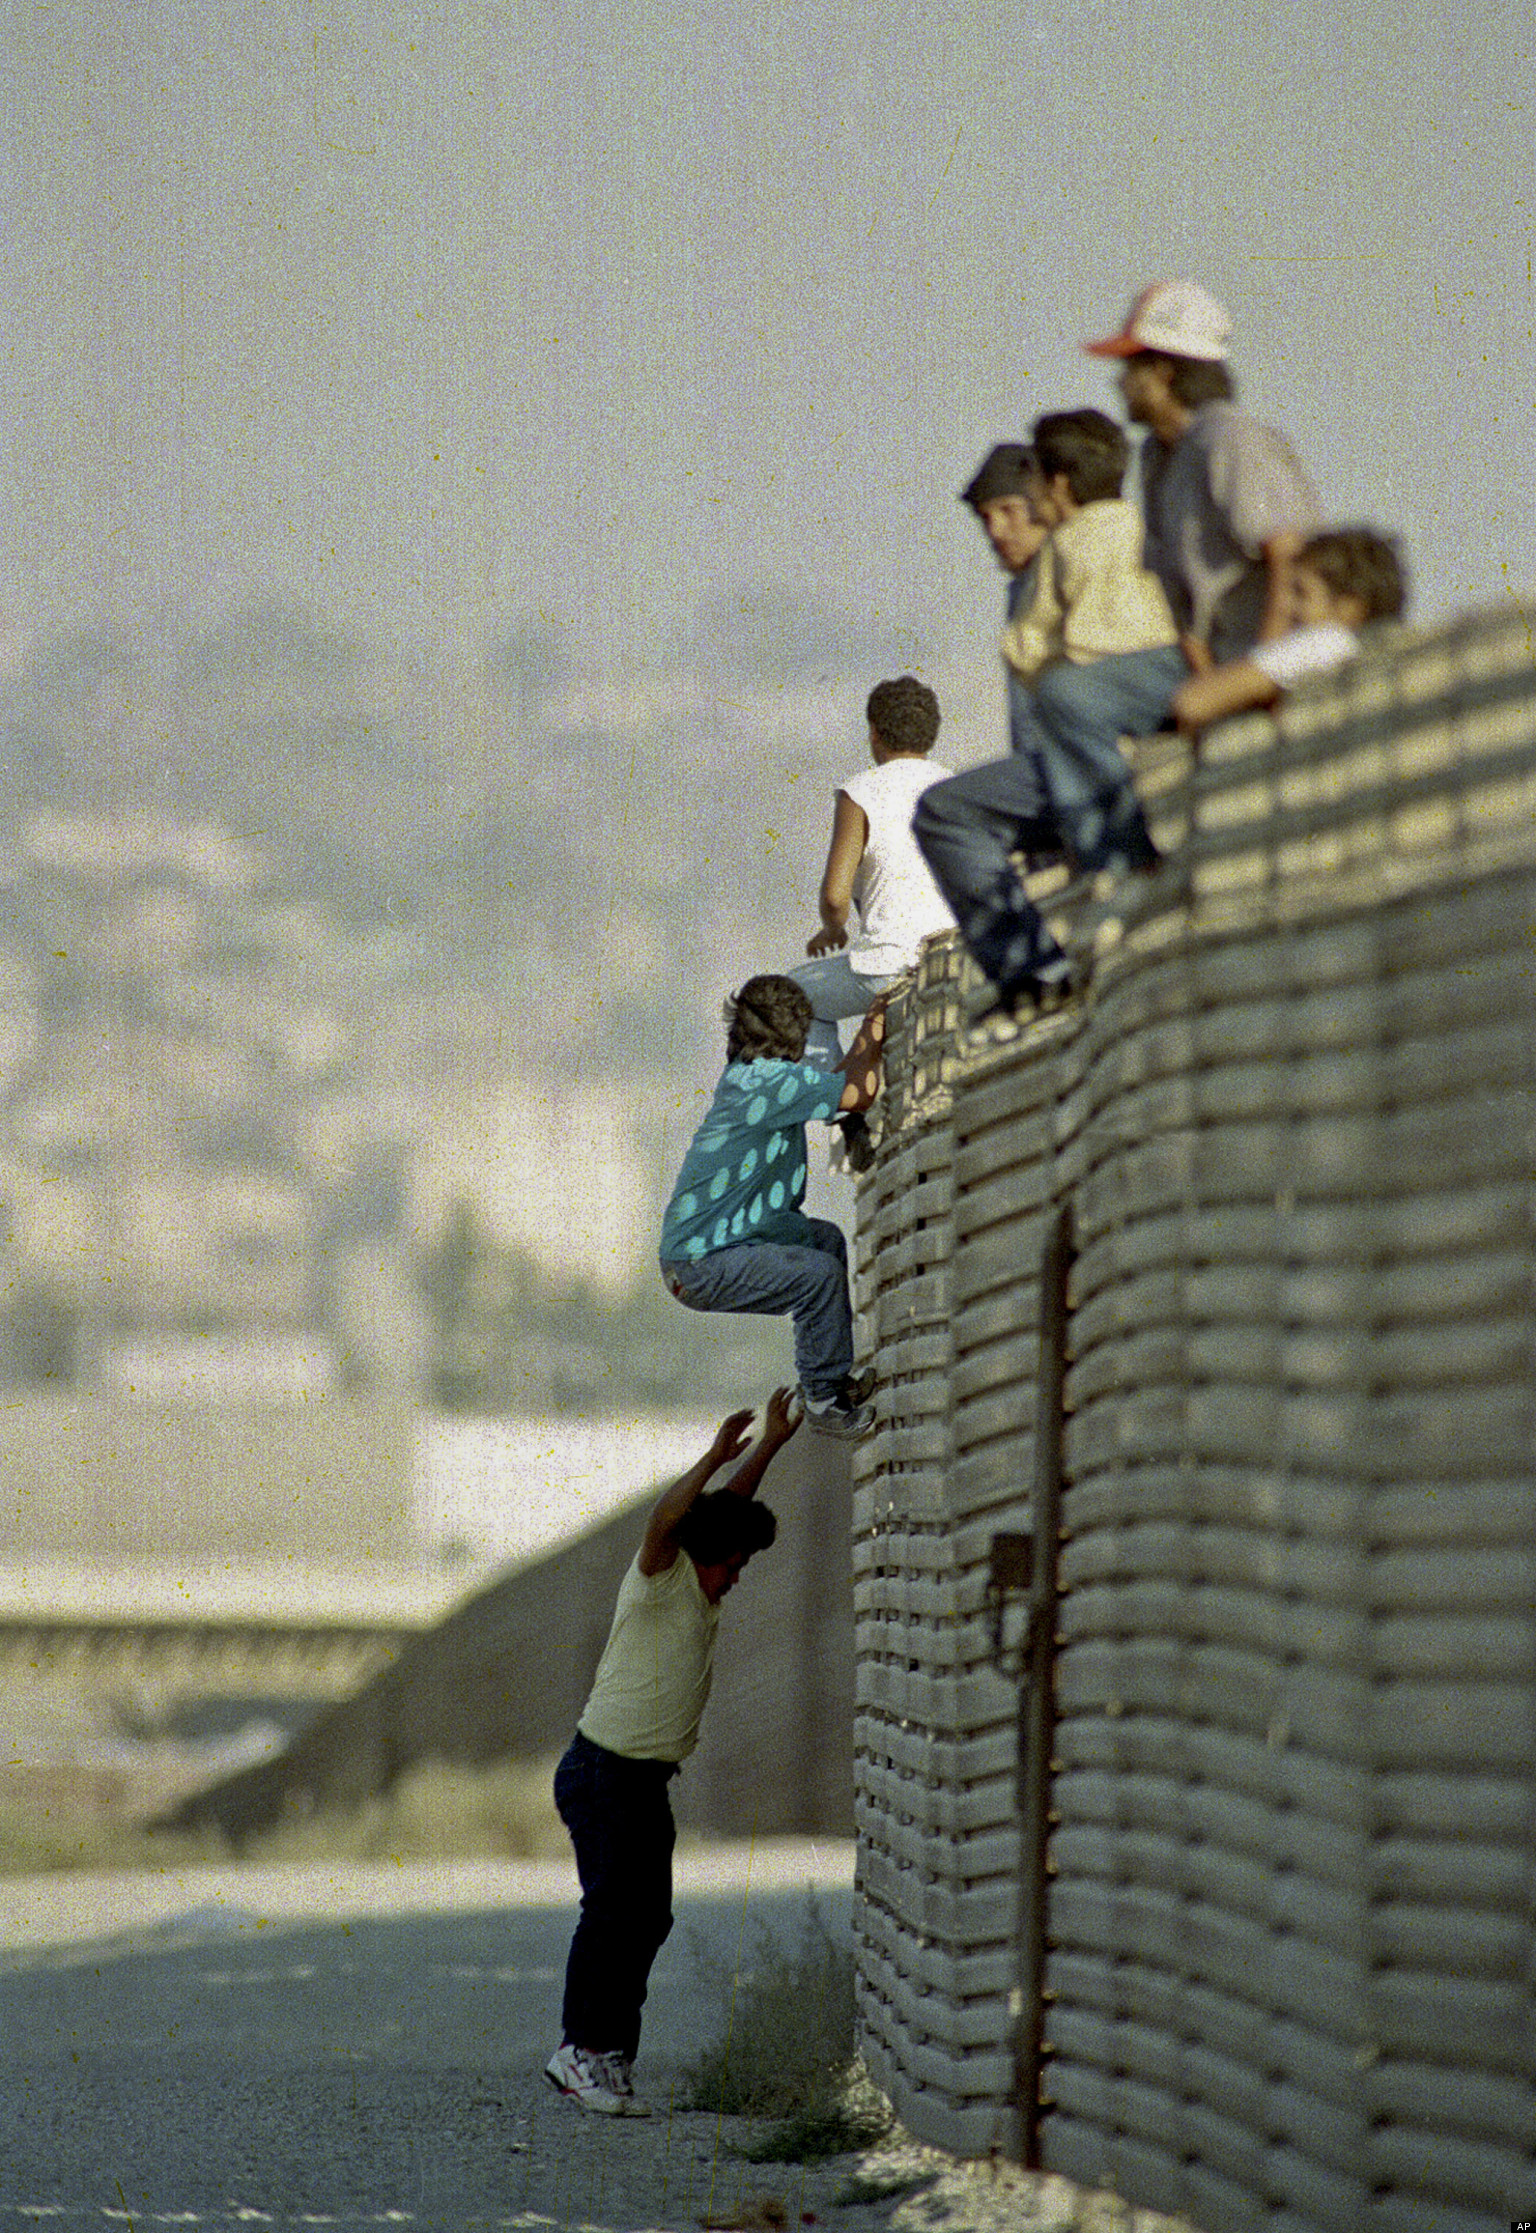 a report on illegal immigration from mexico into the united states Throughout the 1980s and 1990s, illegal immigration was a constant source of political debate, as immigrants continue to pour into the united states, mostly by land routes through canada and mexico.